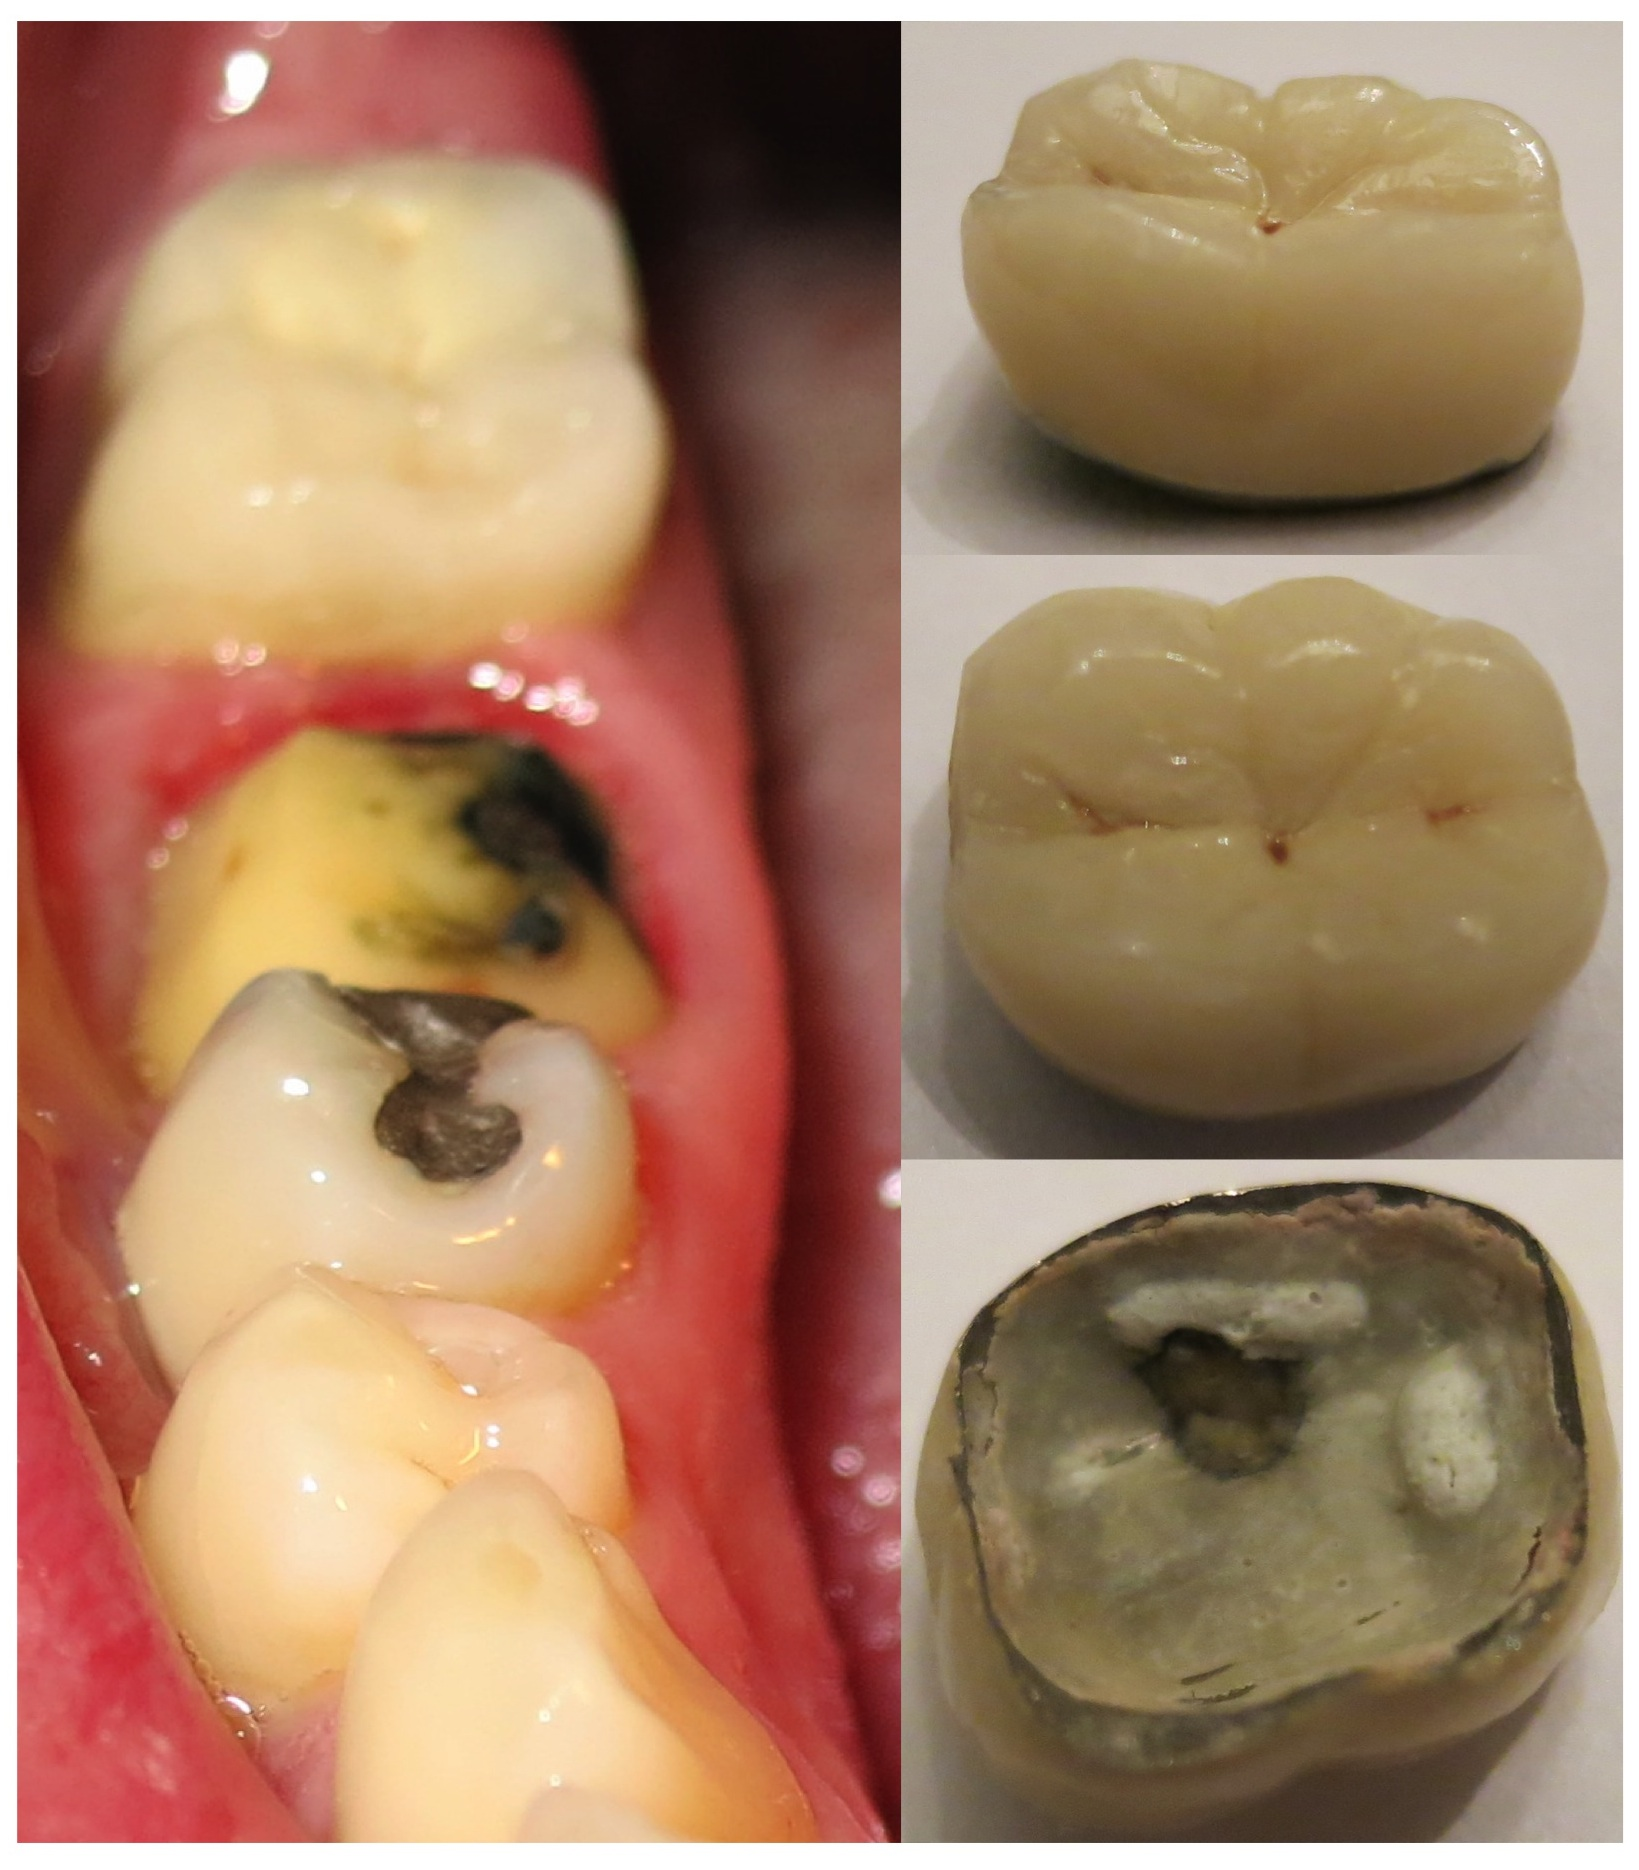 Crown came loose, bad smell: is crown good or bad? (teeth